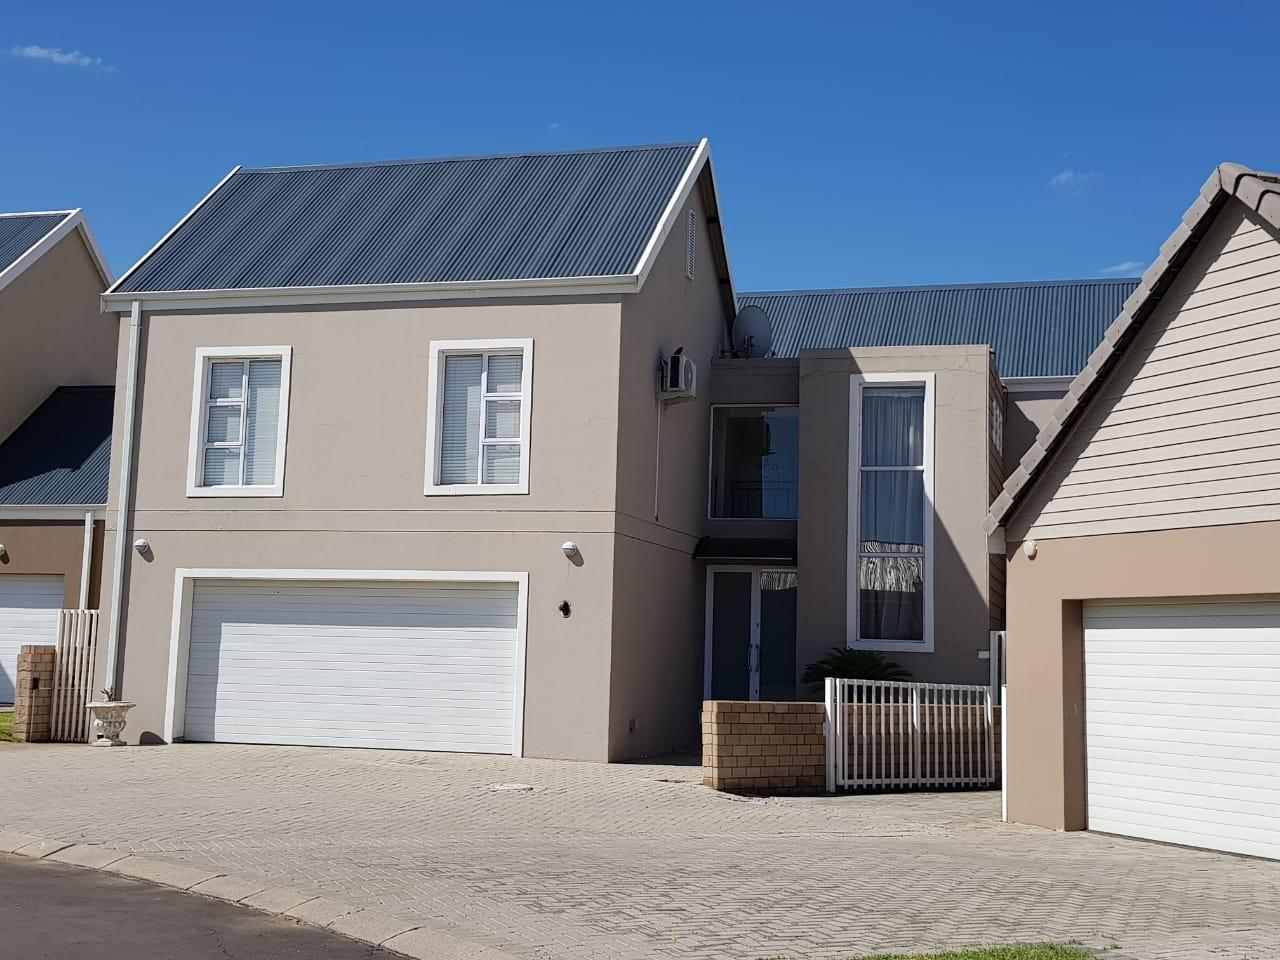 5 Bedroom House For Sale in Riverspray Lifestyle Estate